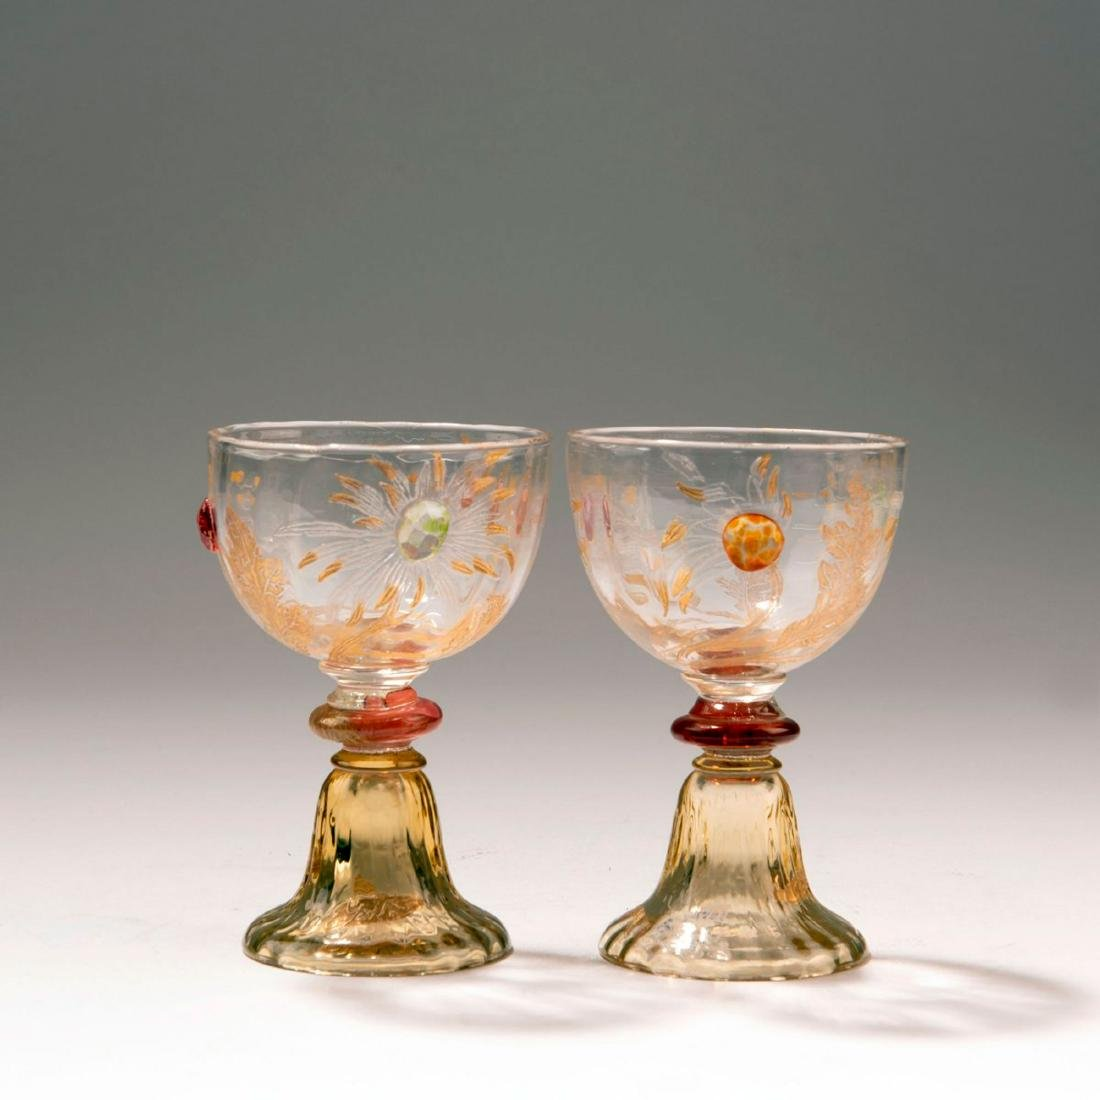 Two sherry glasses from the 'Chrysanthèmes' set, 1903 - 2